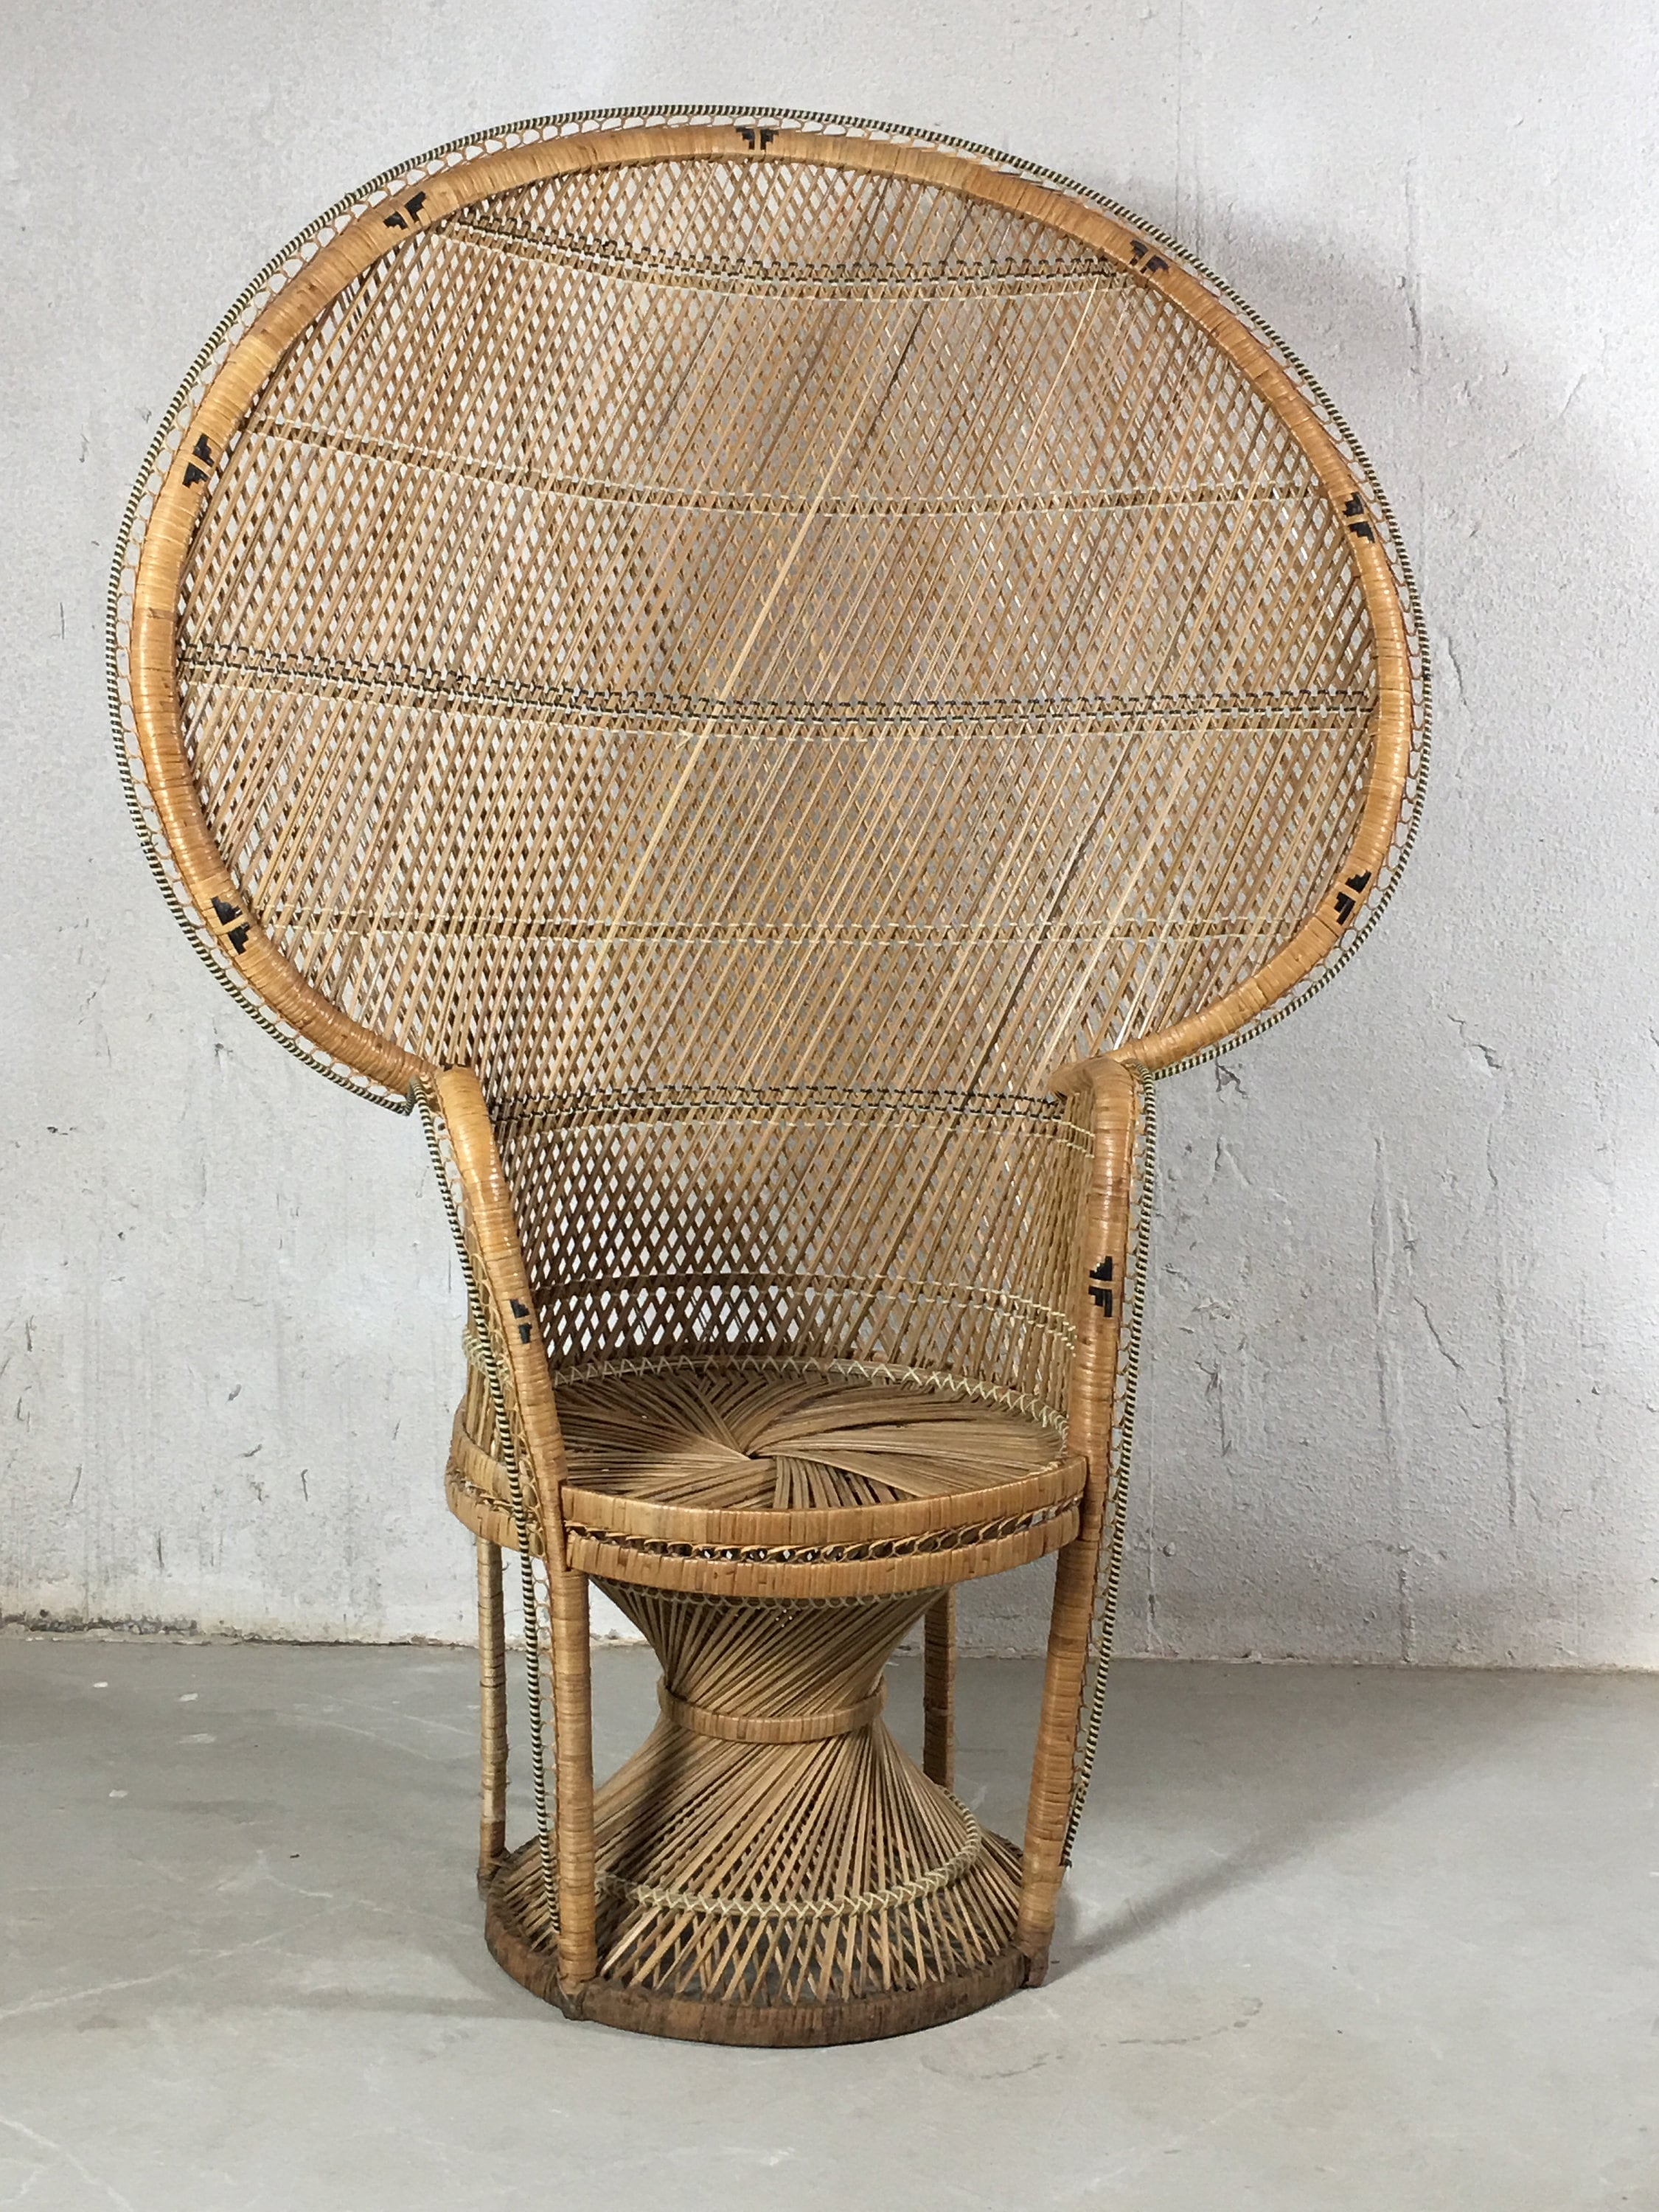 Vintage Peacock Chair, Rattan Chair, Rattan Furniture, Wicker Furniture,  High Back Fan Back Boho Decor, Bohemian Decor, Mid Century Wingback